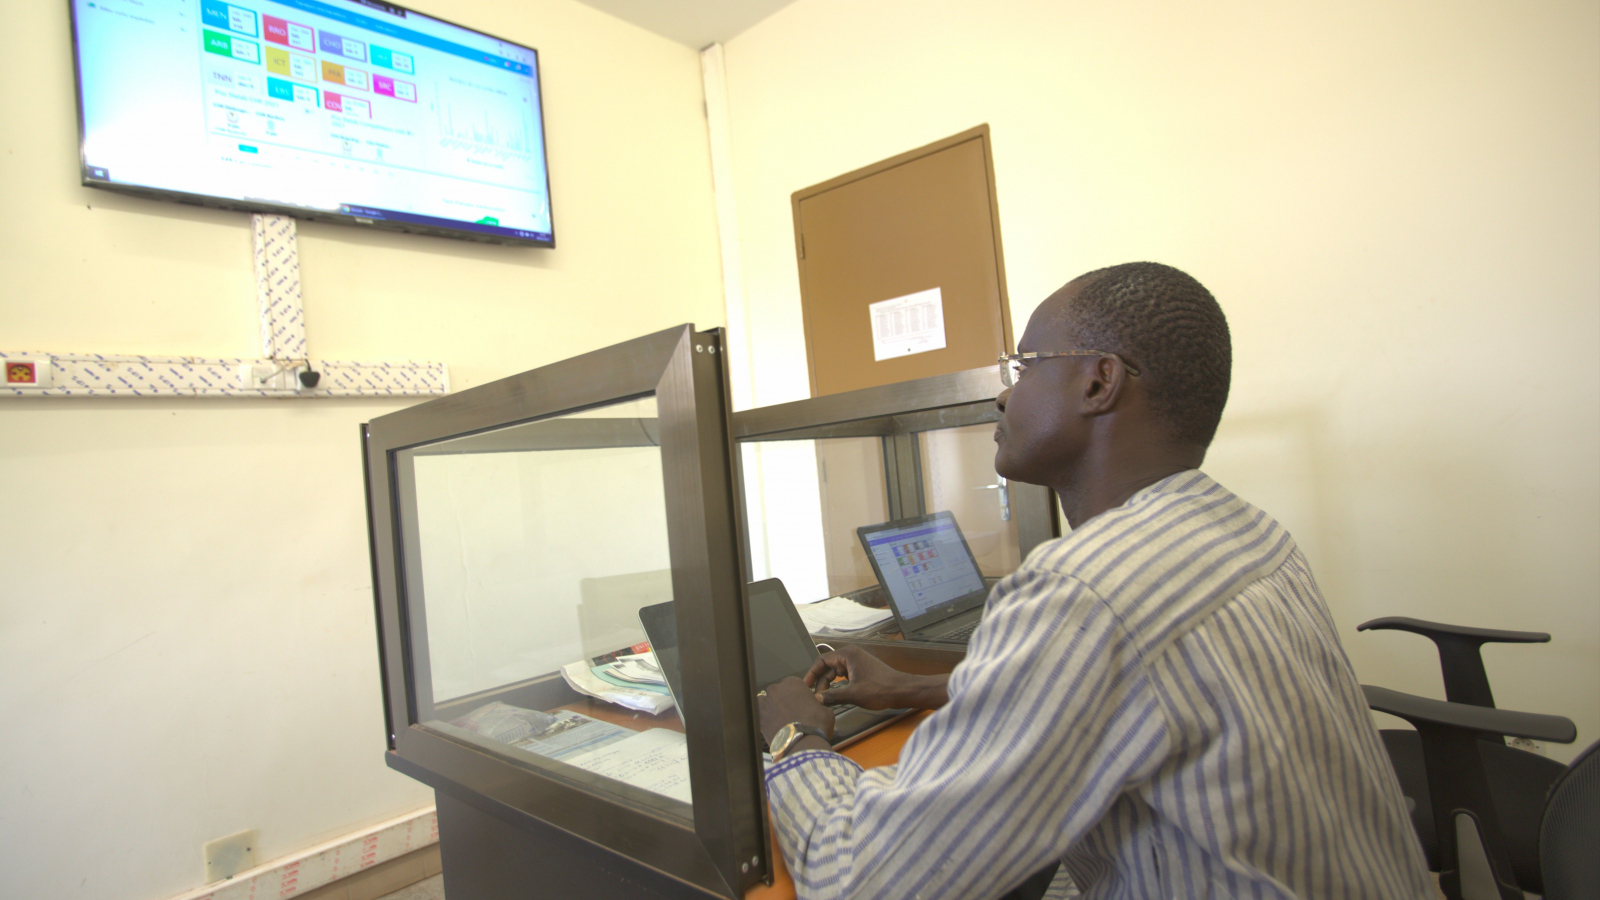 Dr. Yameogo interacting with the STELab dashboard to monitor bacterial meningitis across the country. (Photo Credit: Human Interest Documentaries / Davycas International, 2021)